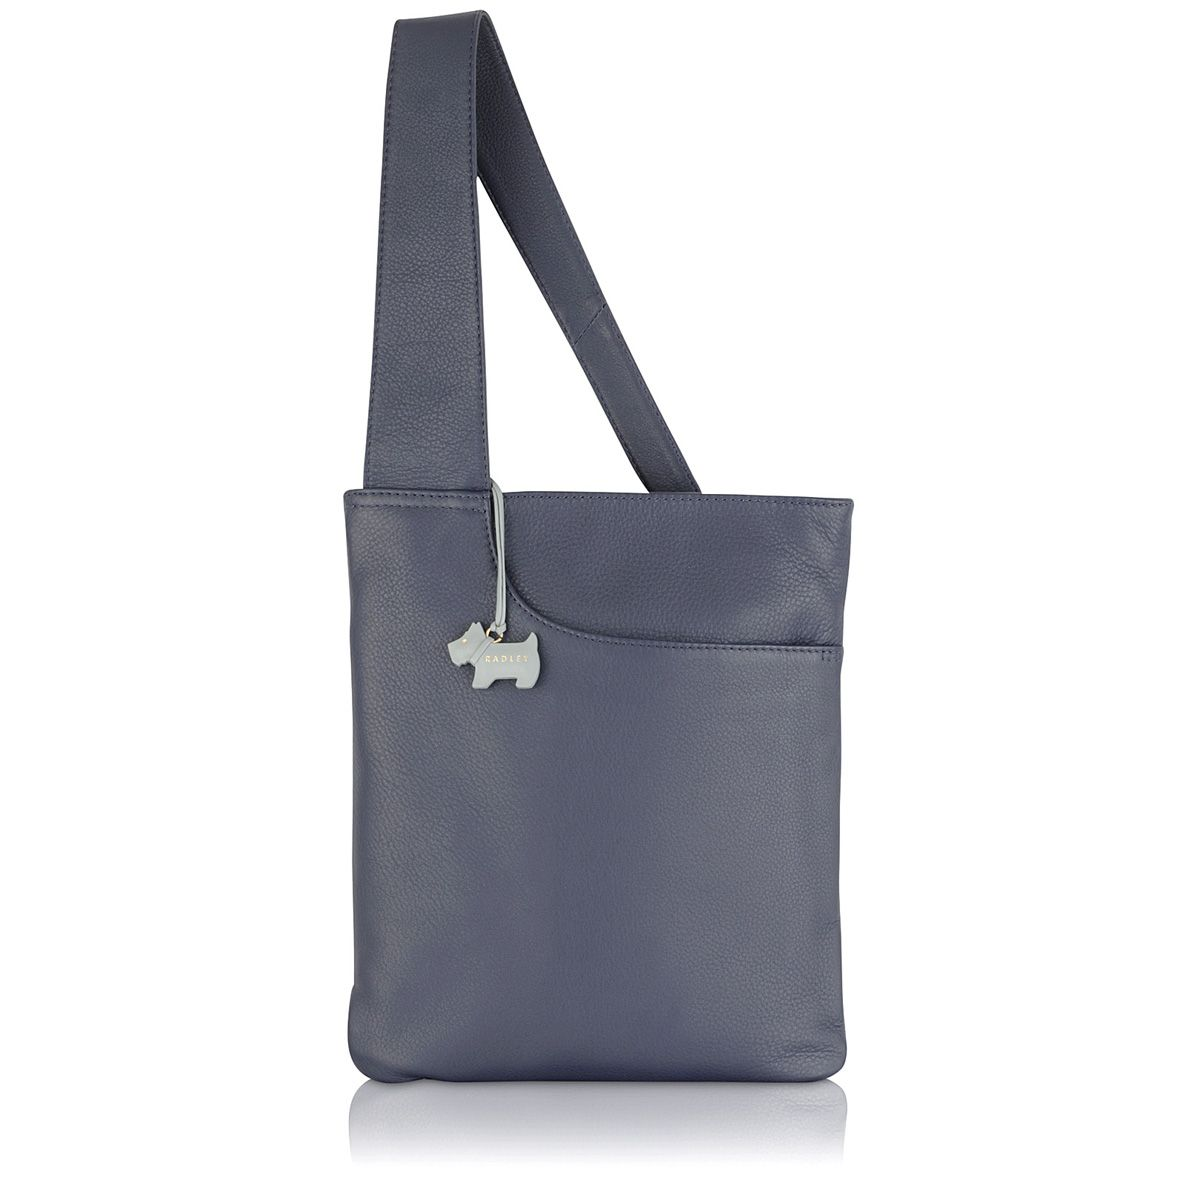 Radley Pocket bag medium ziptop crossbody bag Navy